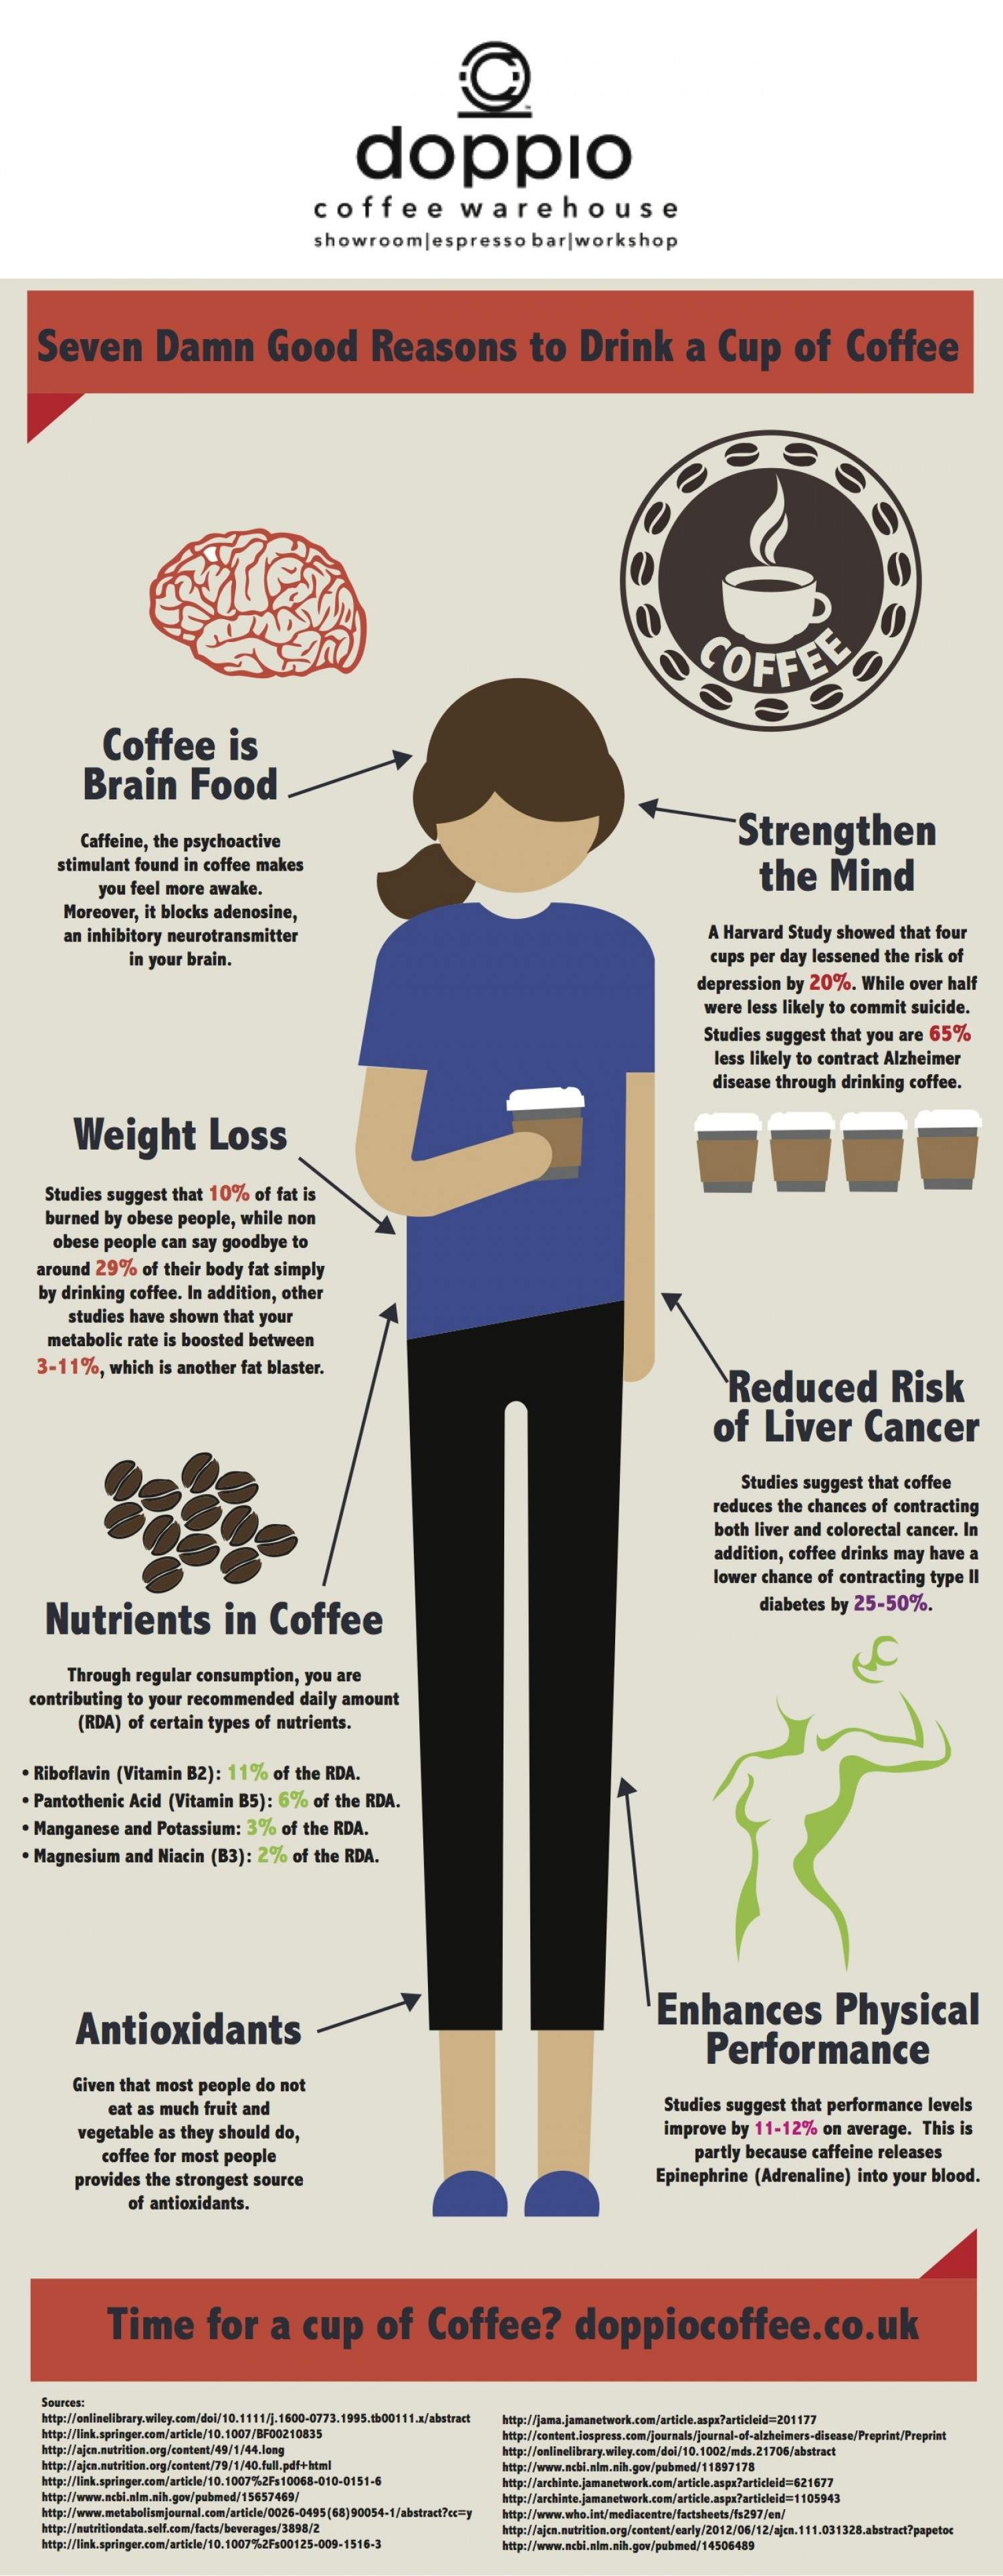 Seven Damn Good Reasons To Drink Cup Of Coffee